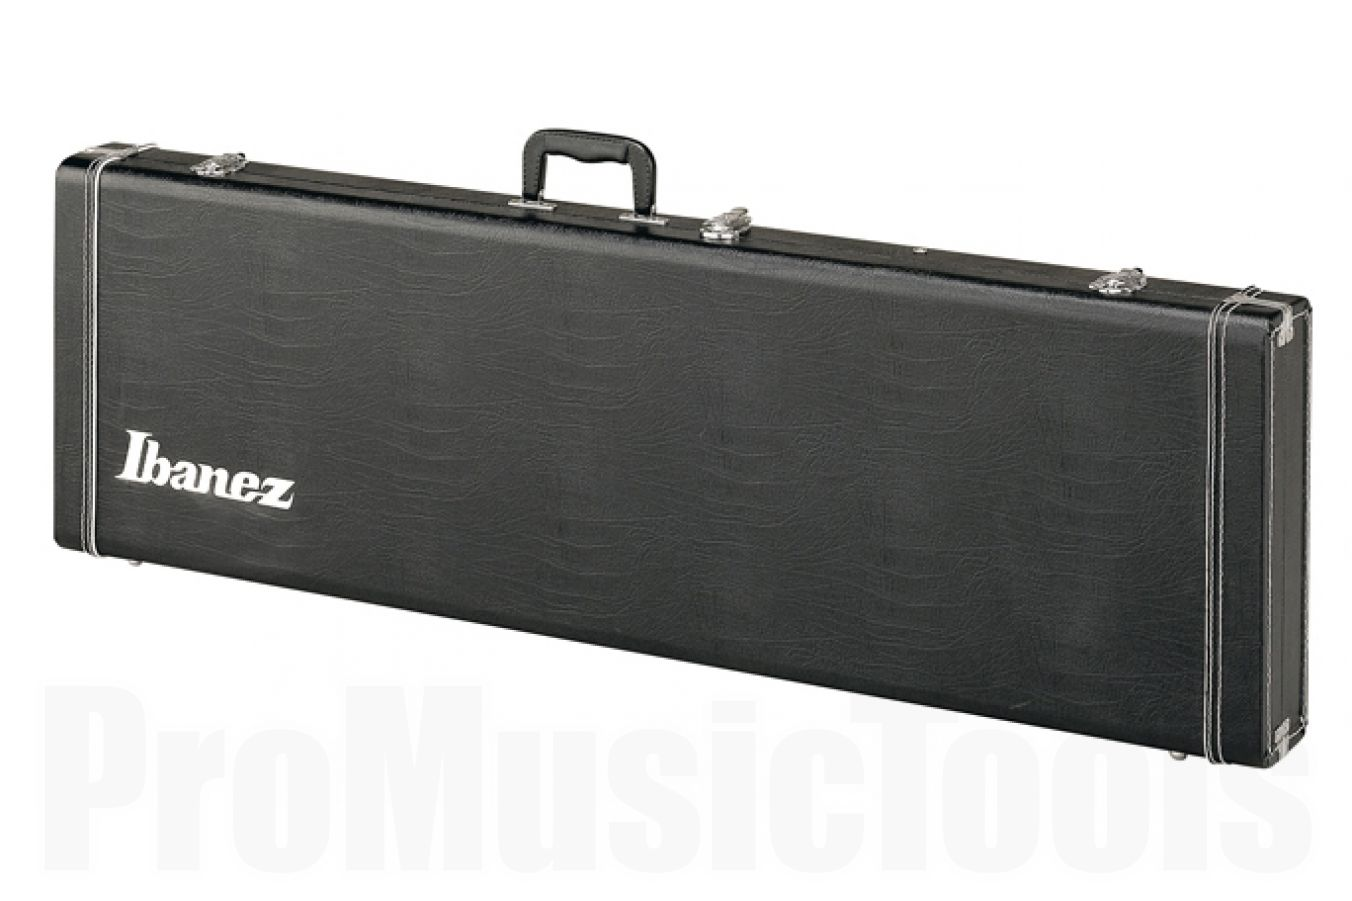 Ibanez W50RG Wooden Case for RG,RG7, RGD, RGD7, RG8, S, SA